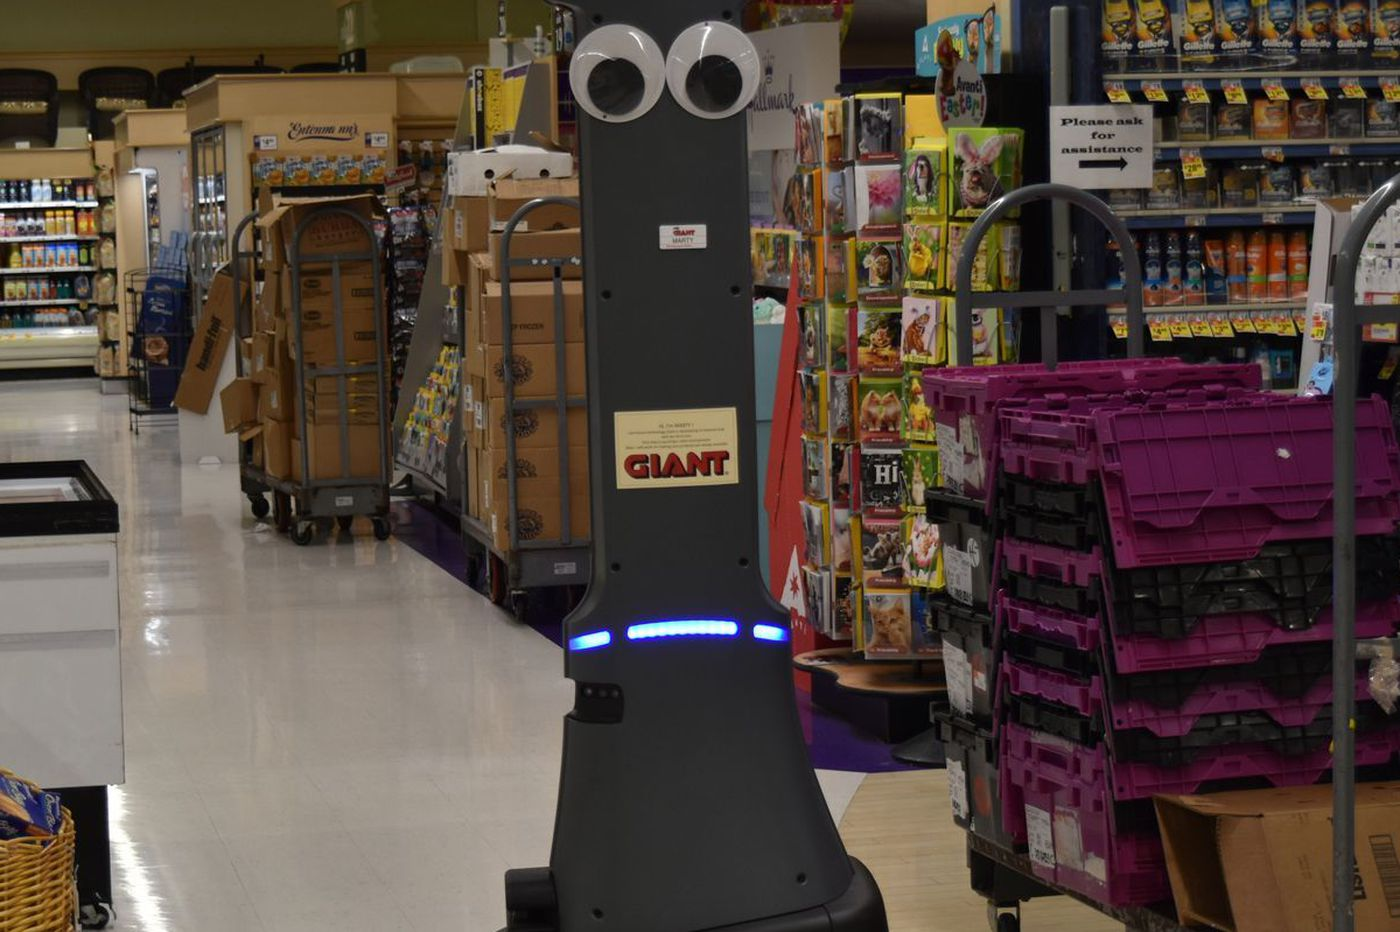 Giant Food Stores will be getting a 6-foot-5, googly eyed robot to scan aisles for hazards